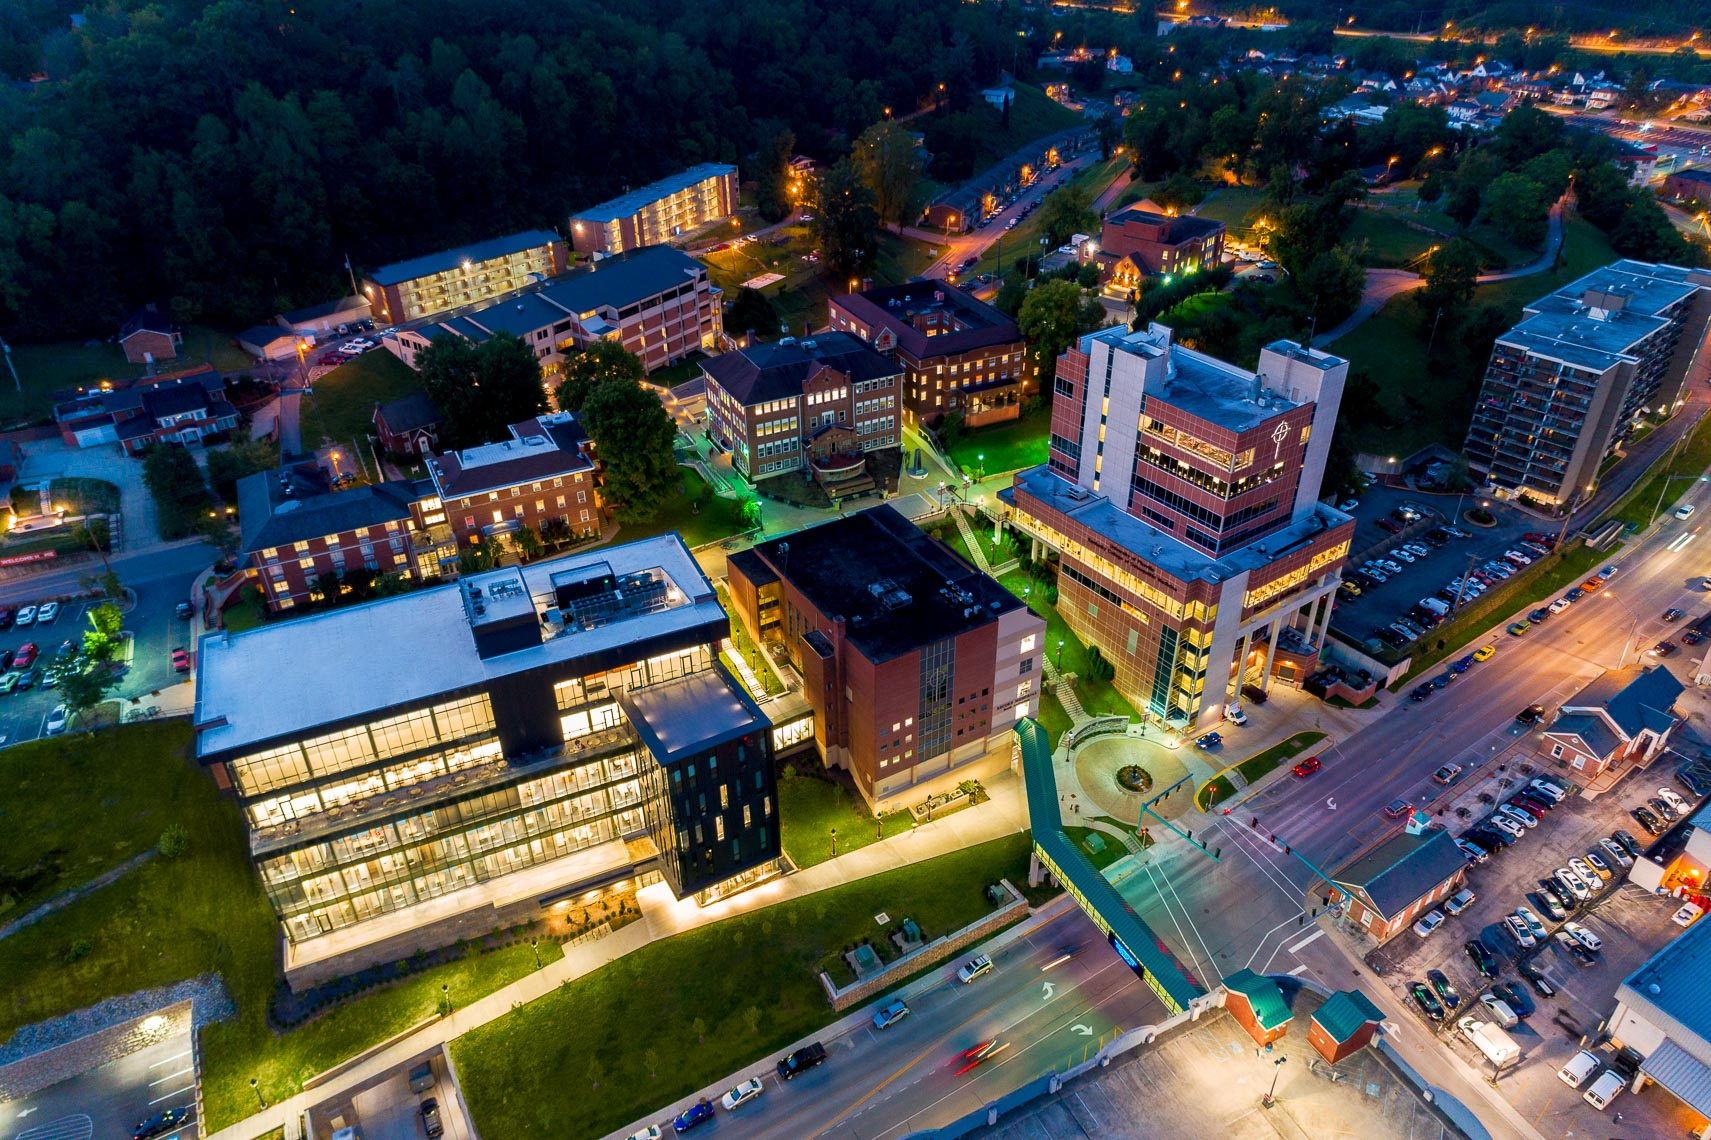 Aerial drone view of Pikeville University